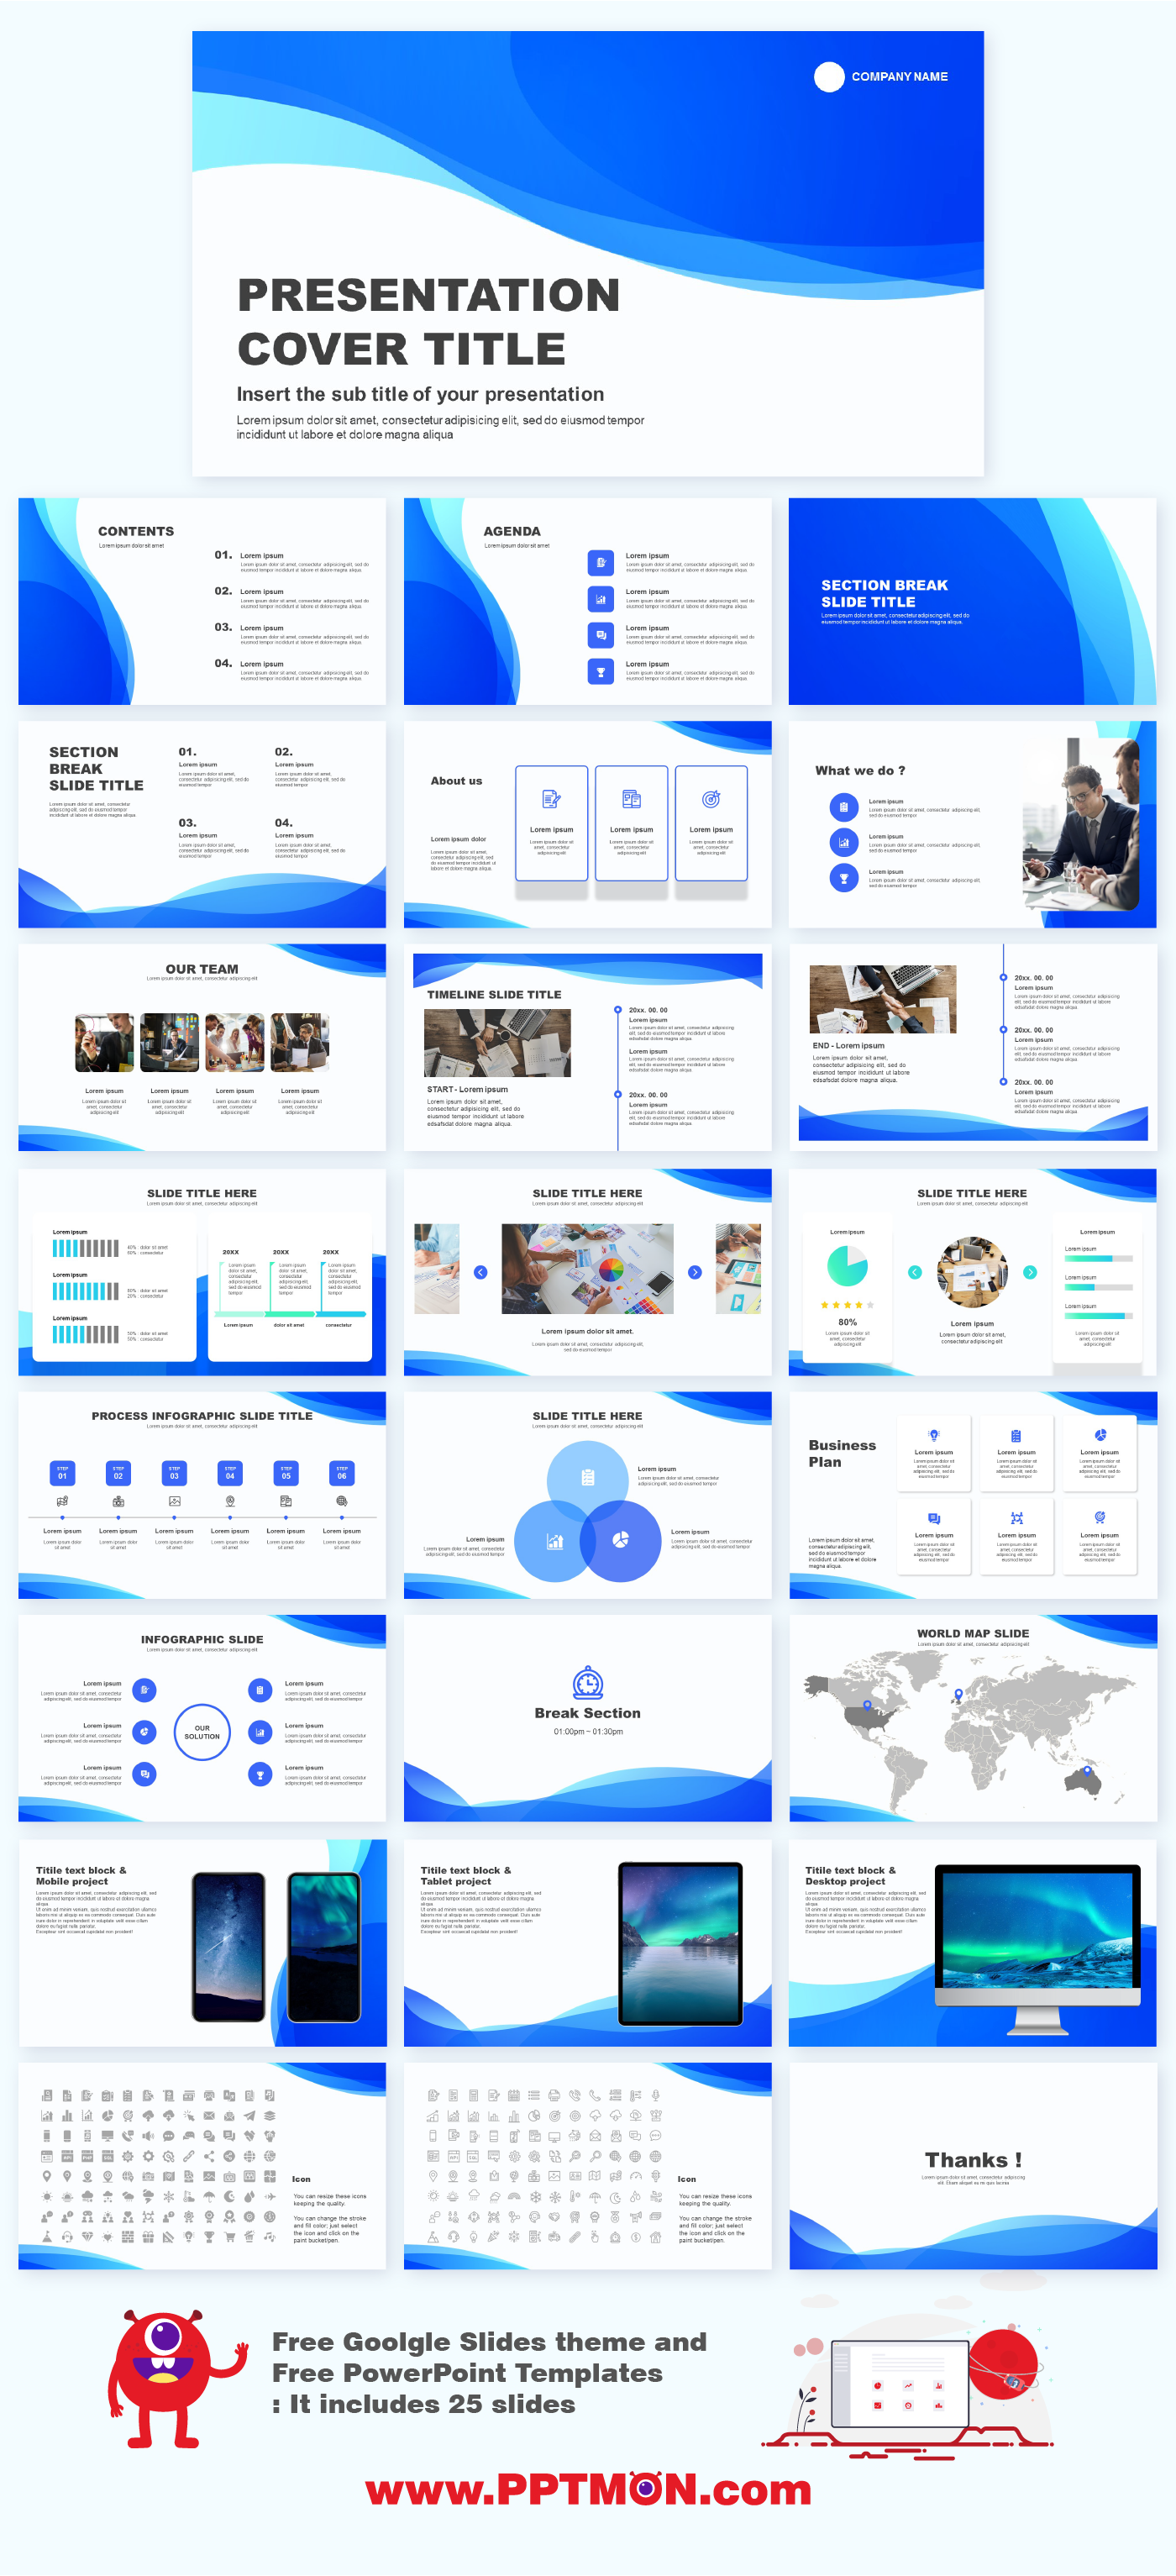 Wave Design Free Presentation Templates Google Slide Theme Powerpoint Template Free Download Design Download Free Google Powerpoint Pre En 2020